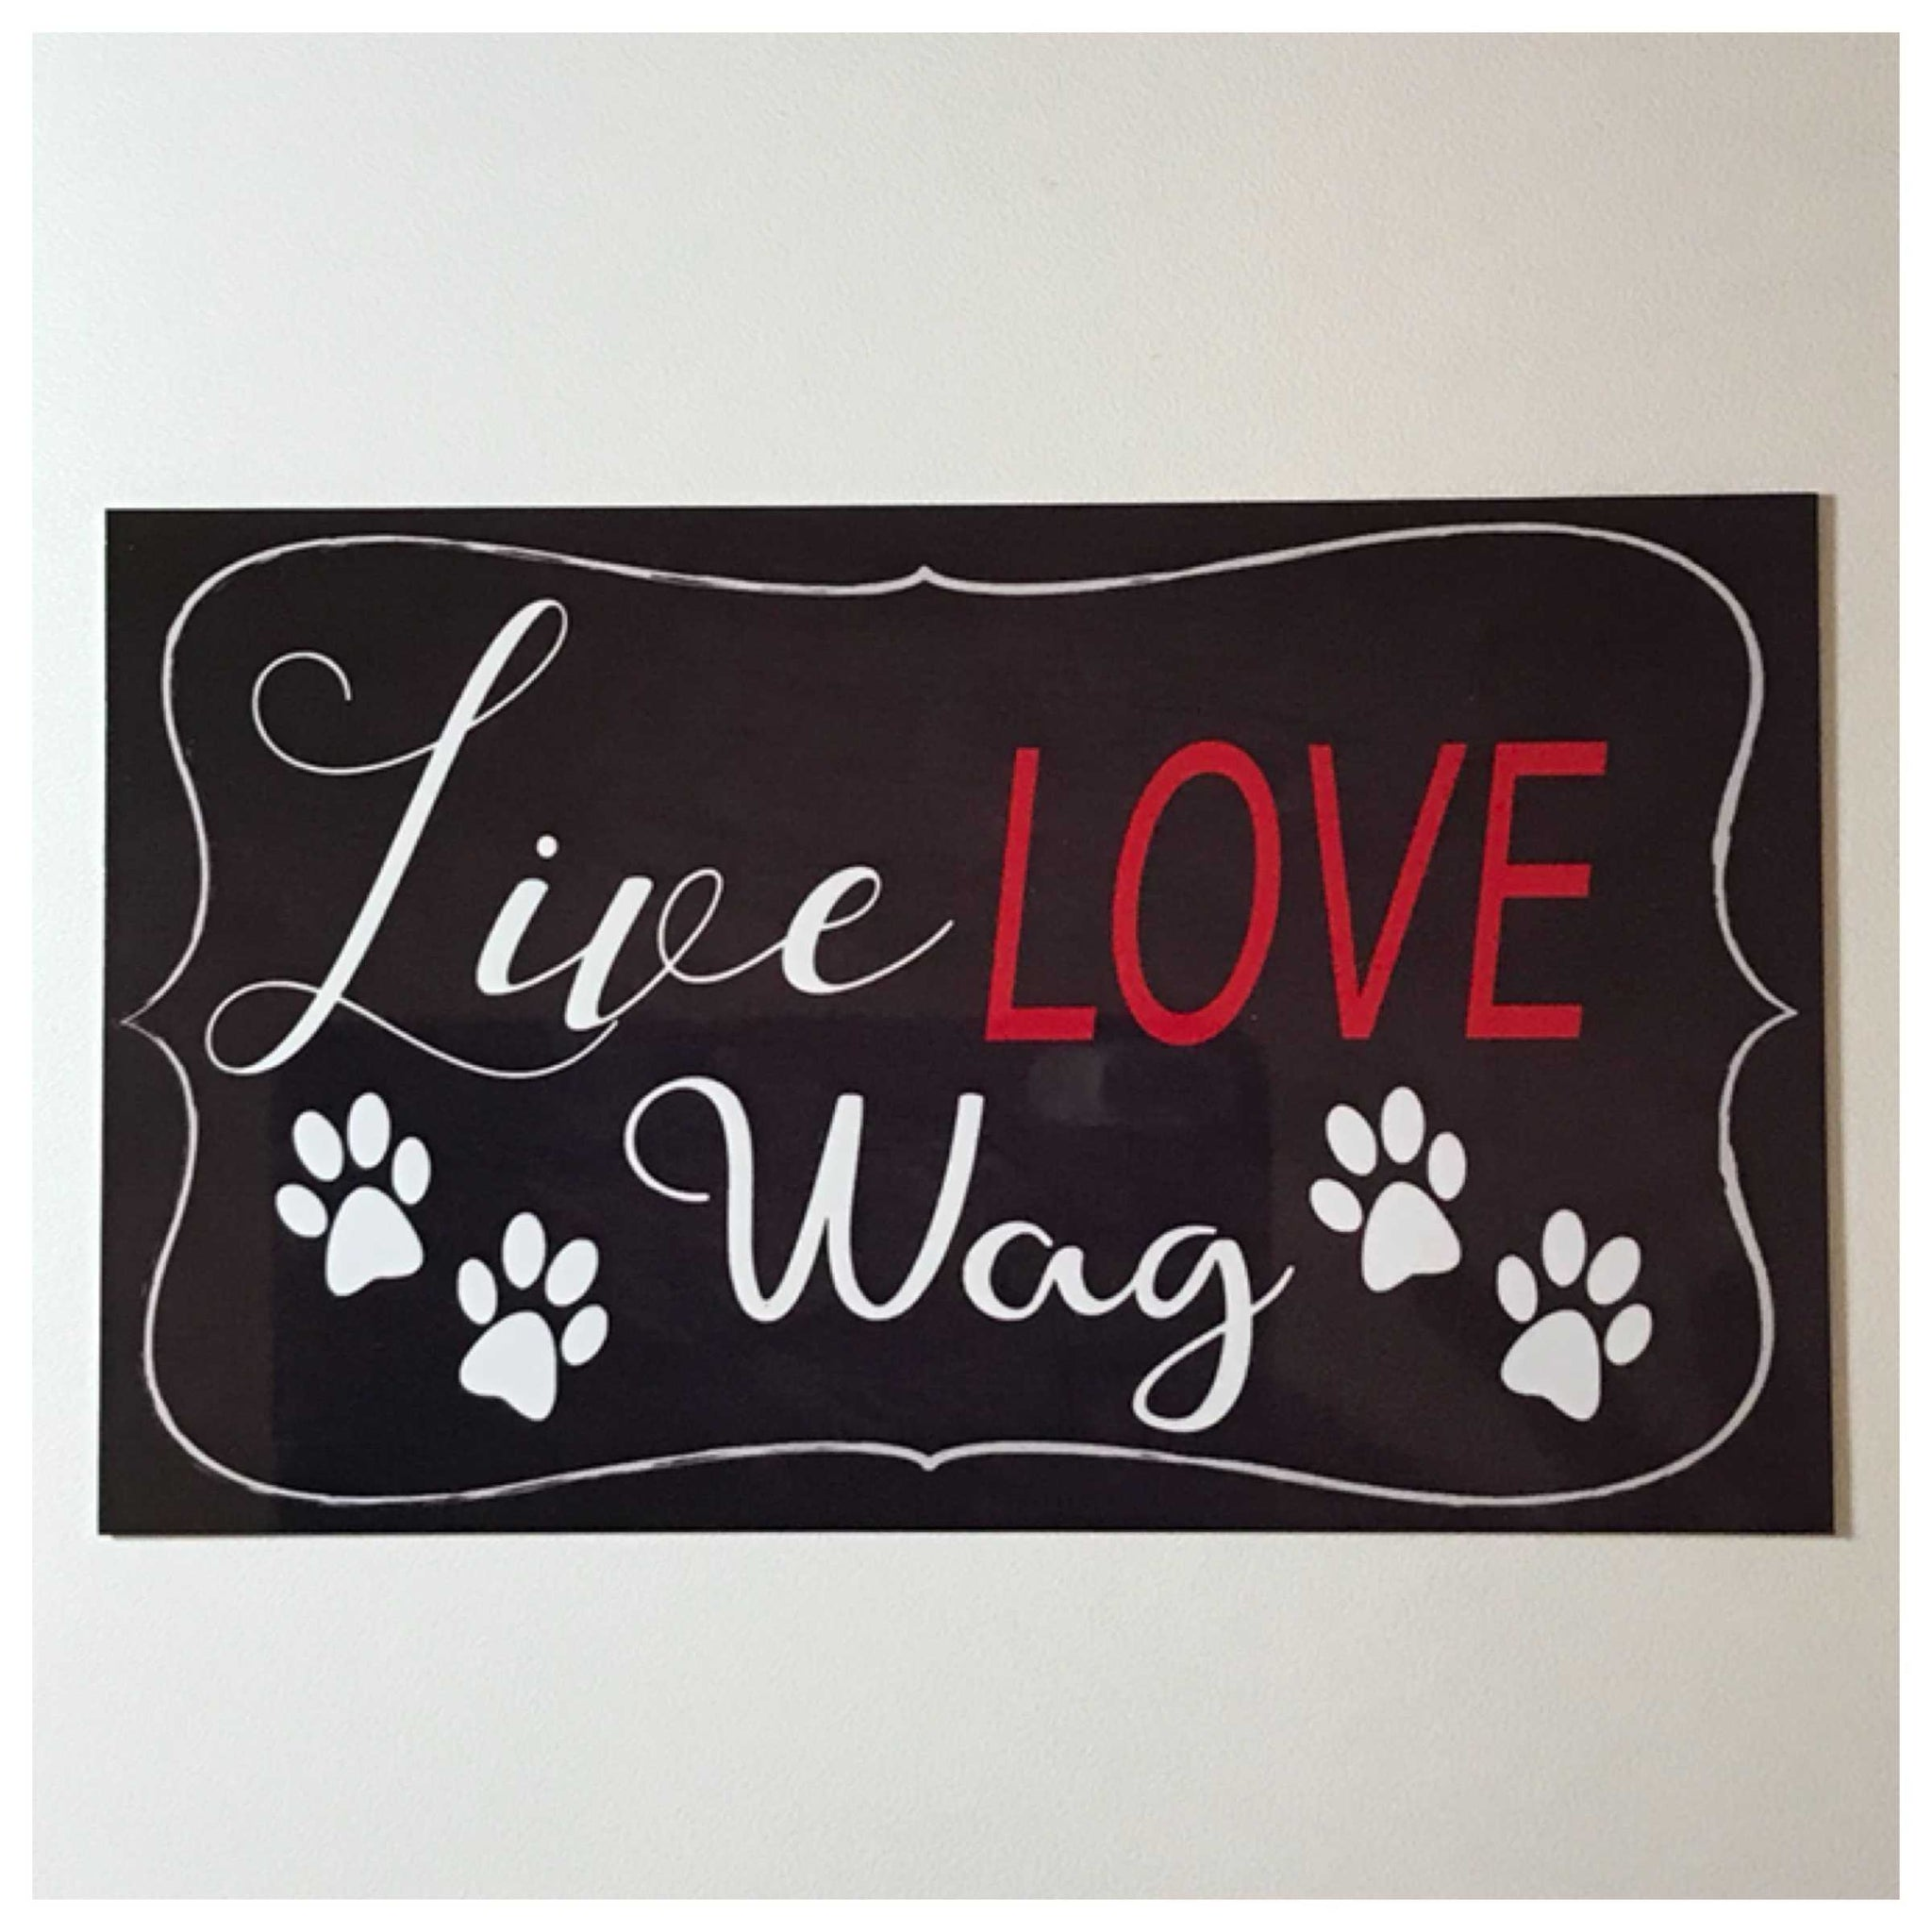 Live love Wag Dog Sign Plaques & Signs The Renmy Store